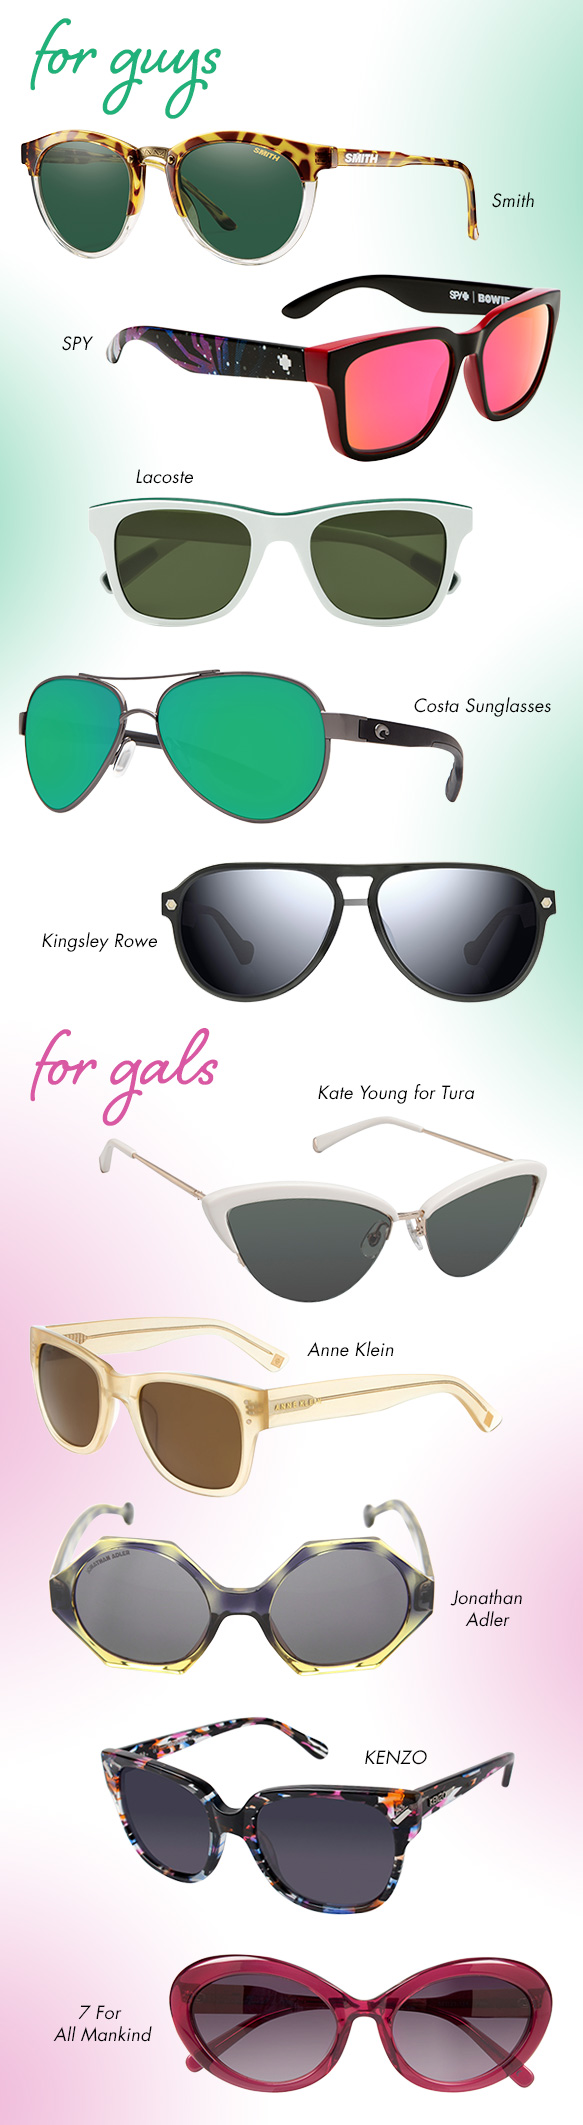 Smith (Questa), SPY (Bowie), Lacoste (L781S), Costa Sunglasses (Loreto), Kingsley Rowe (Wes), Kate Young for Tura (K504), Anne Klein (AK7004), Jonathan Adler (Waikiki), KENZO (KZ3156), 7 for All Mankind (7903)